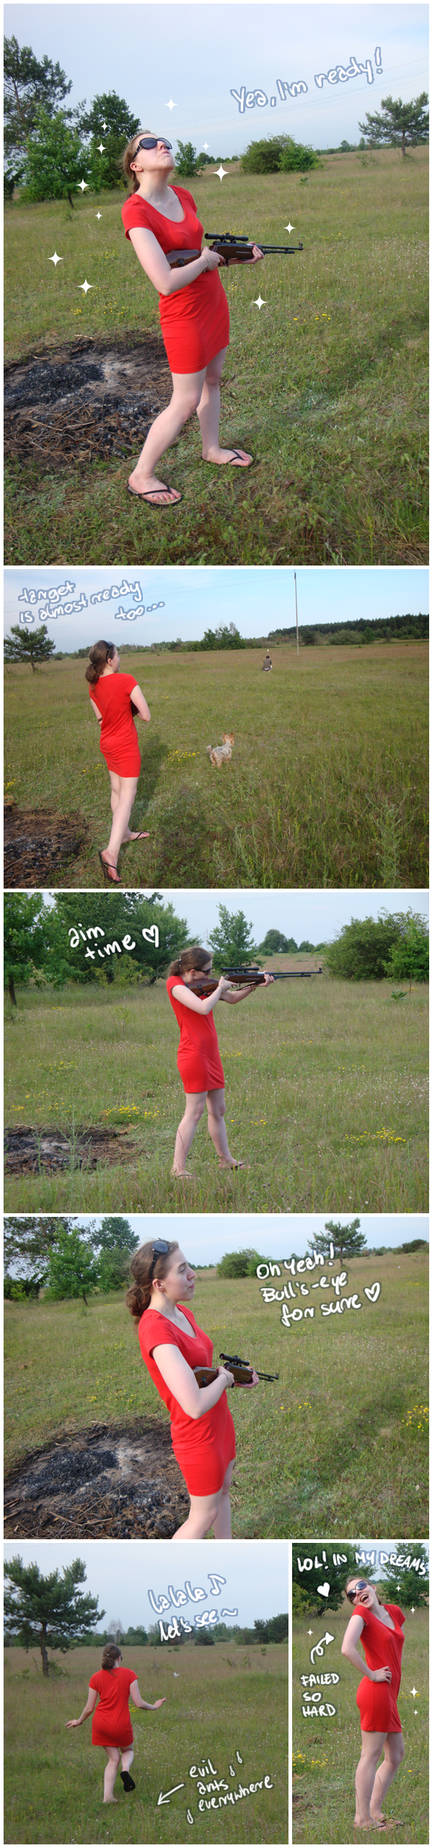 Just having fun with air rifle XD